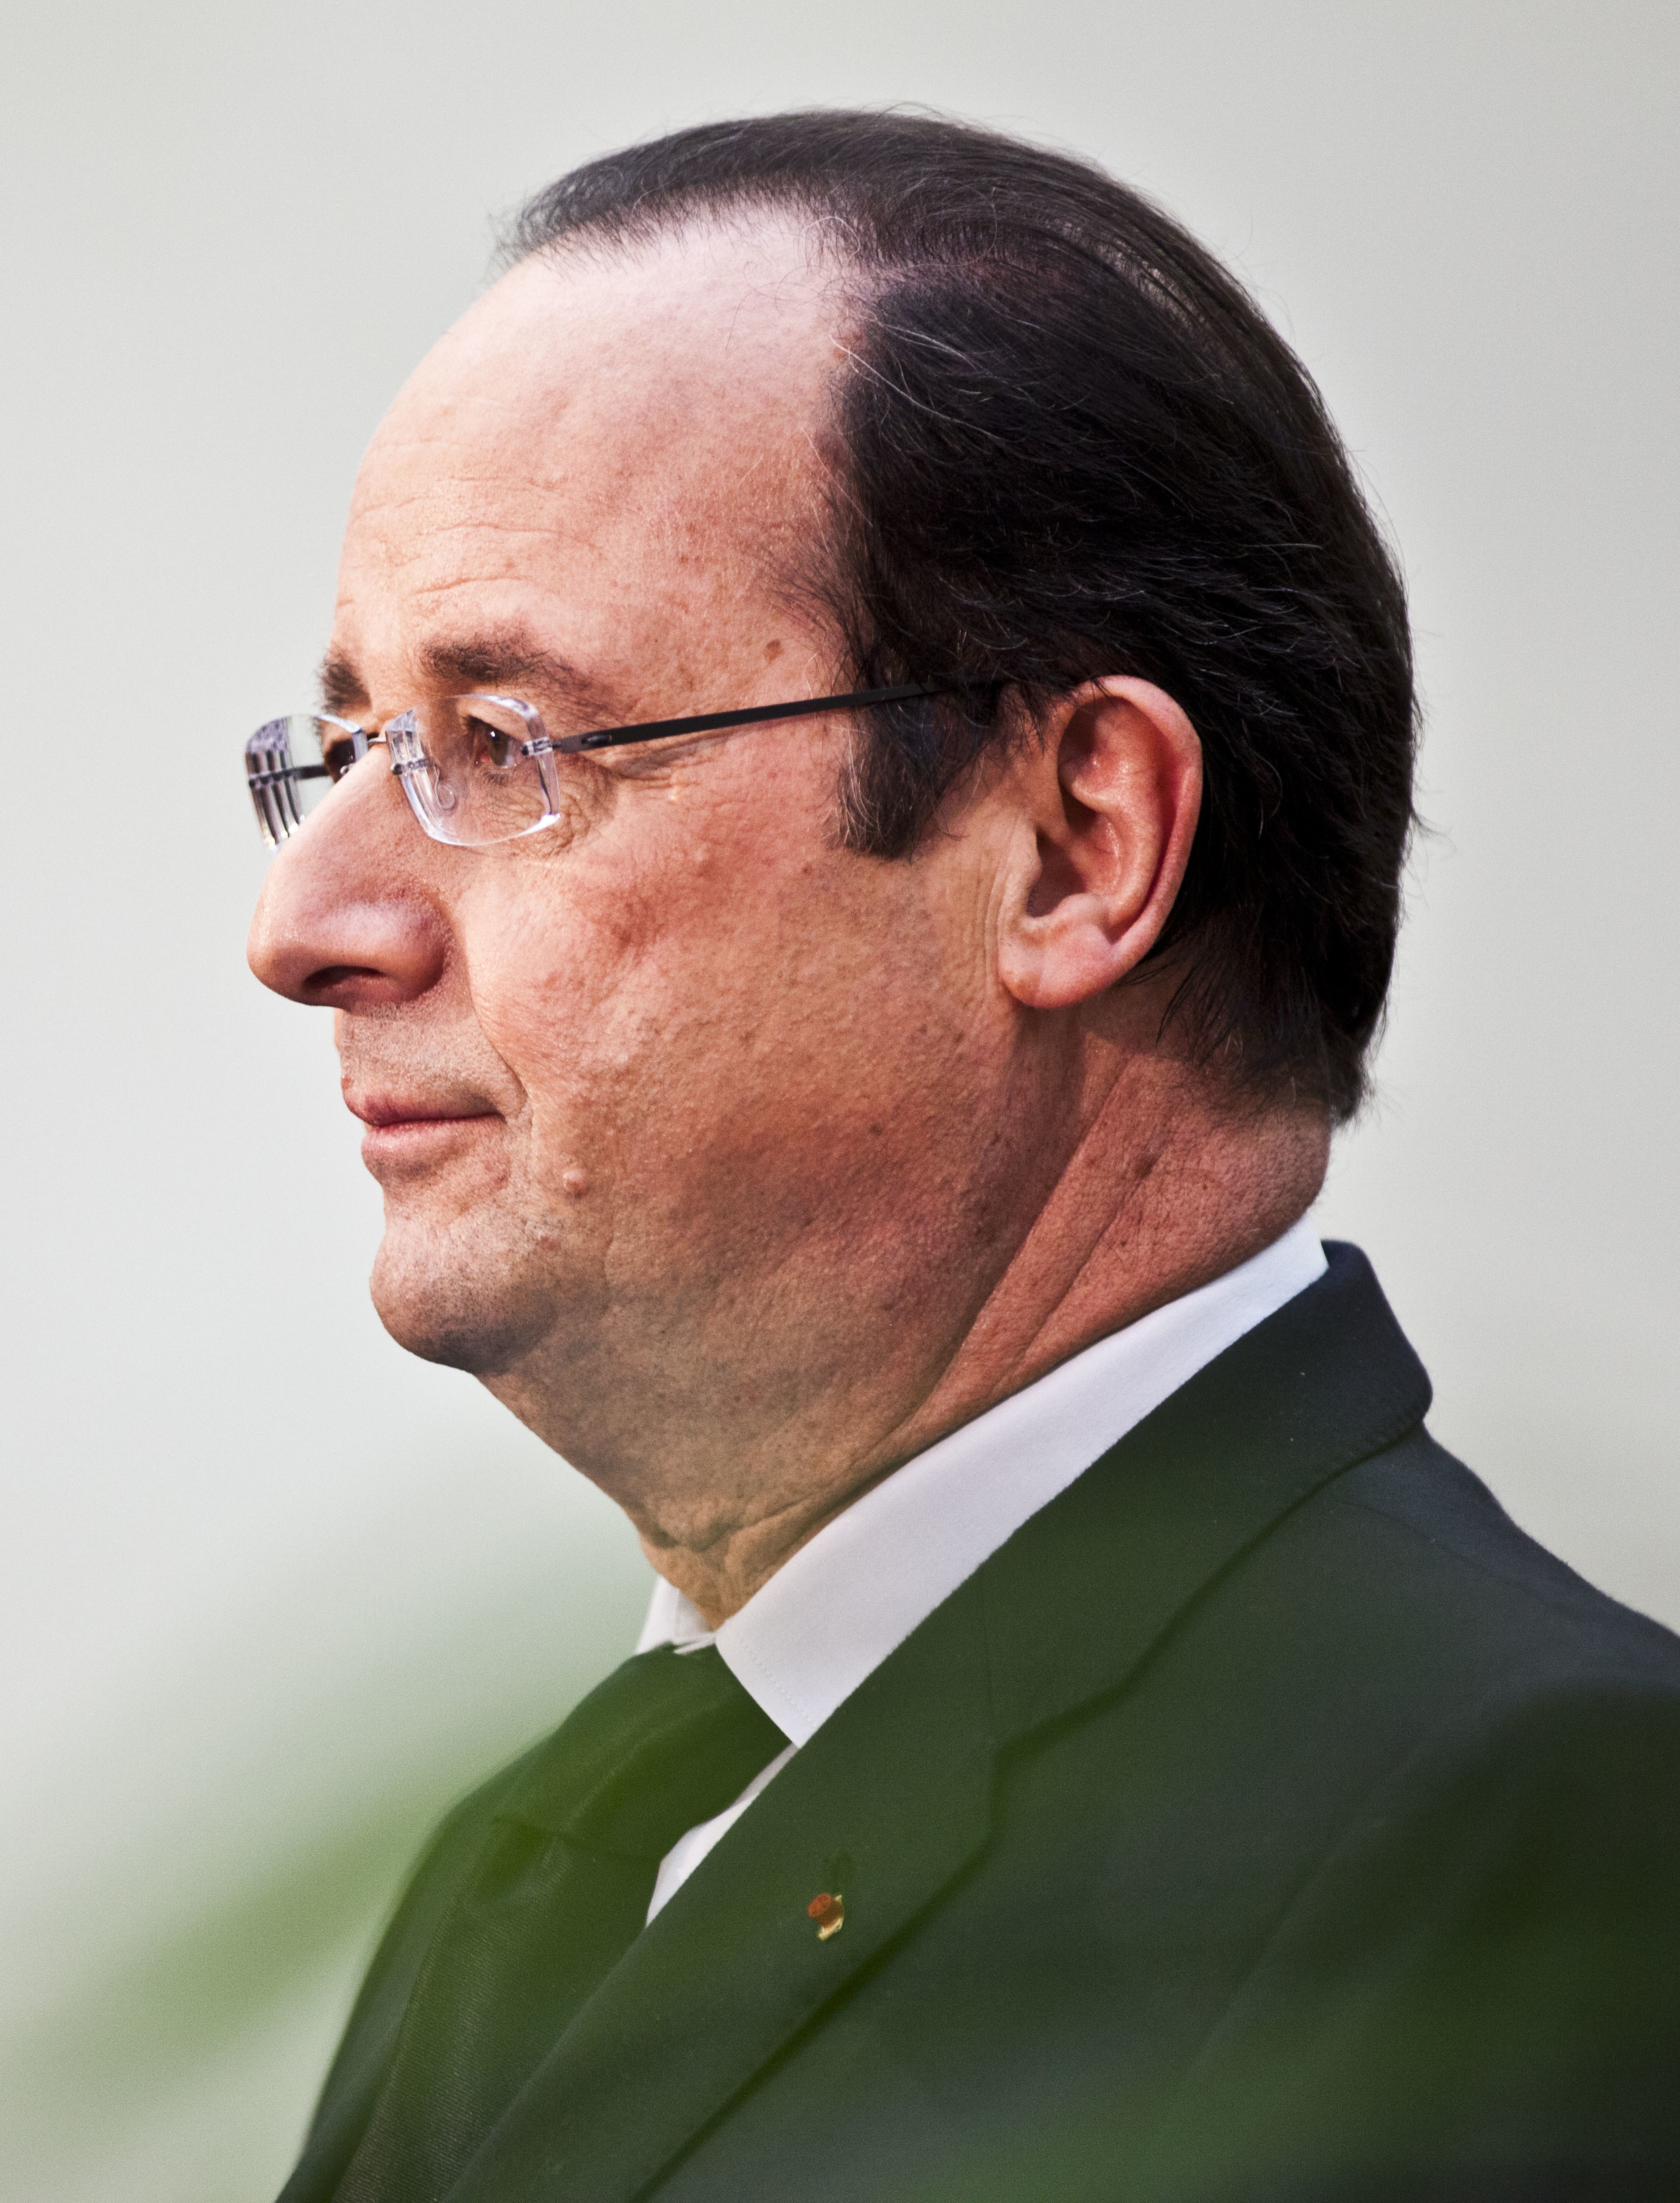 French President François Hollande for Getty Images